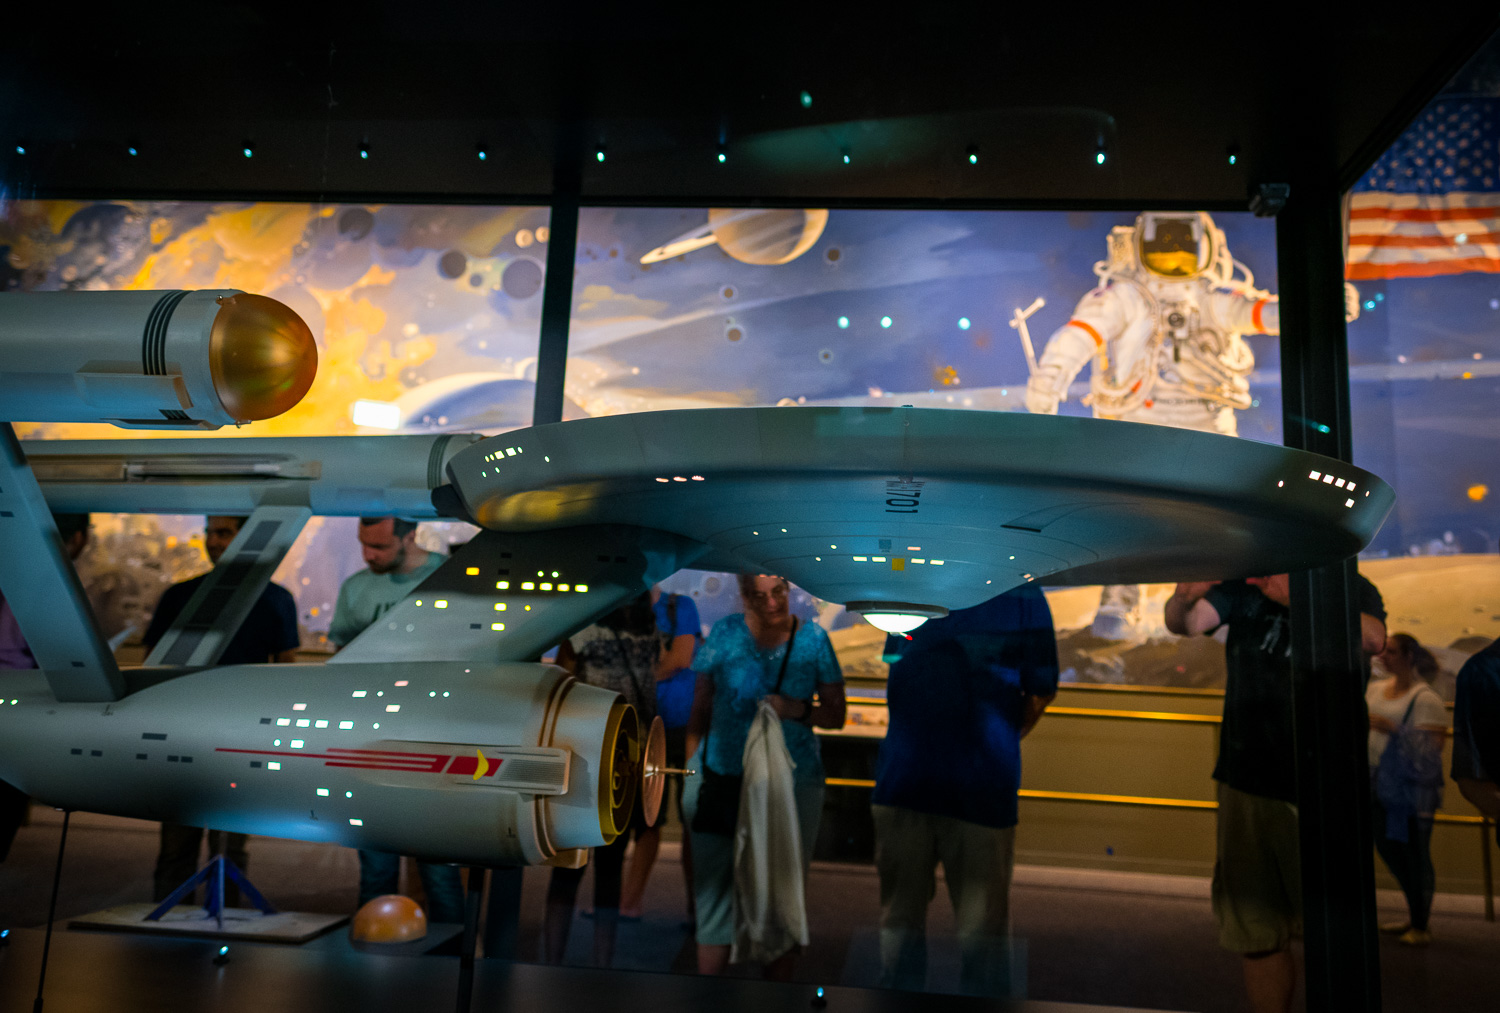 Restored USS Enterprise model on display at the Smithsonian Sea Air and Space Museum in Washington, D.C. Fujifilm X-Pro2, 16mm 1.4. 1/60 @ f2.0, ISO 1000.